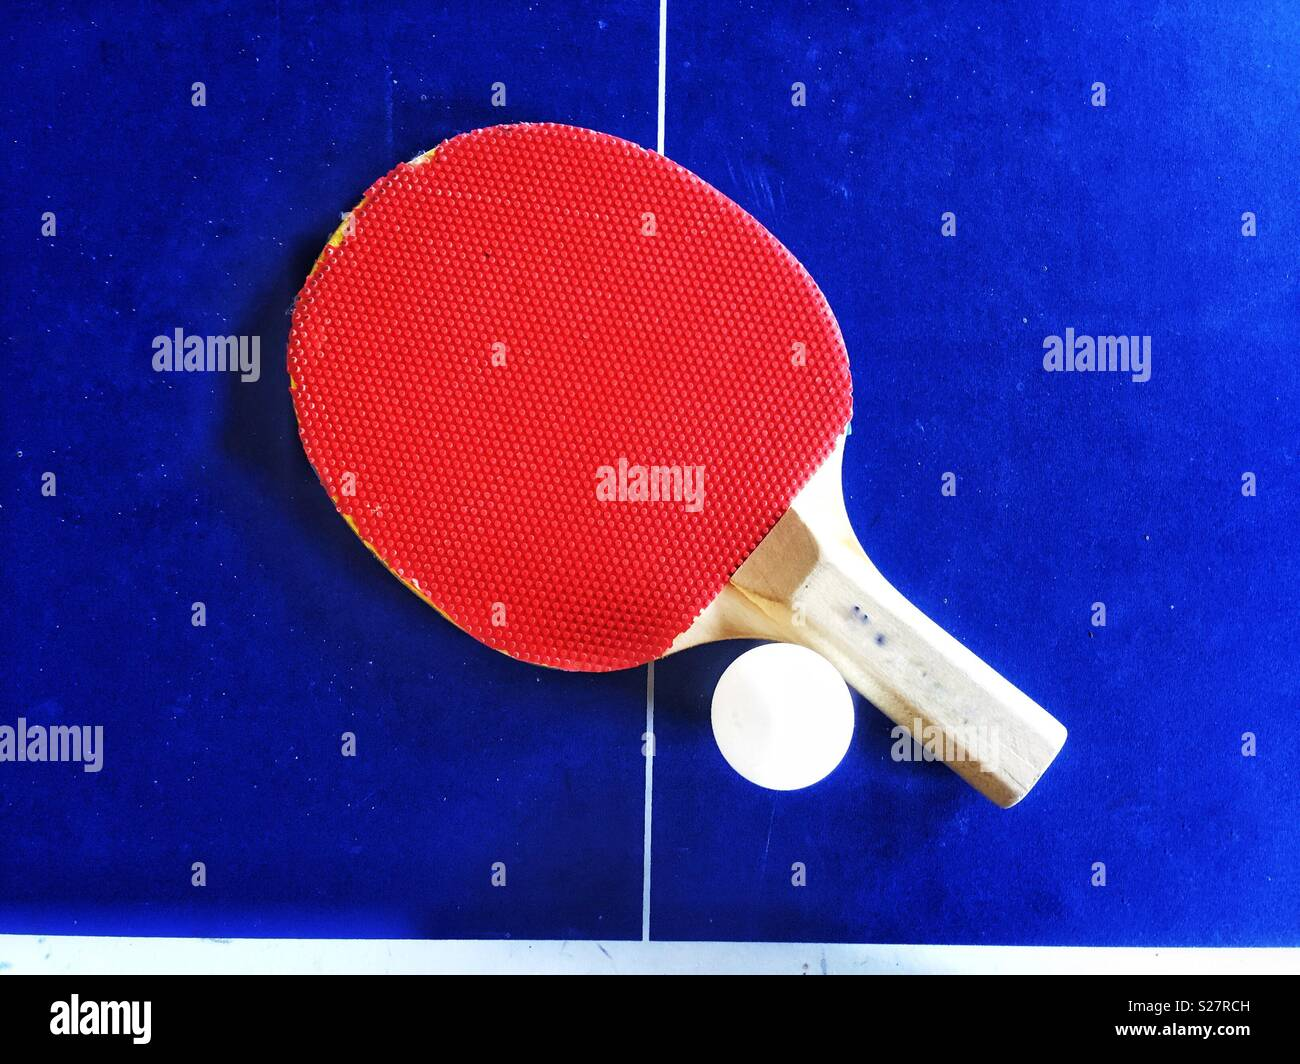 A red table tennis bat and ball on a bright blue table - Stock Image